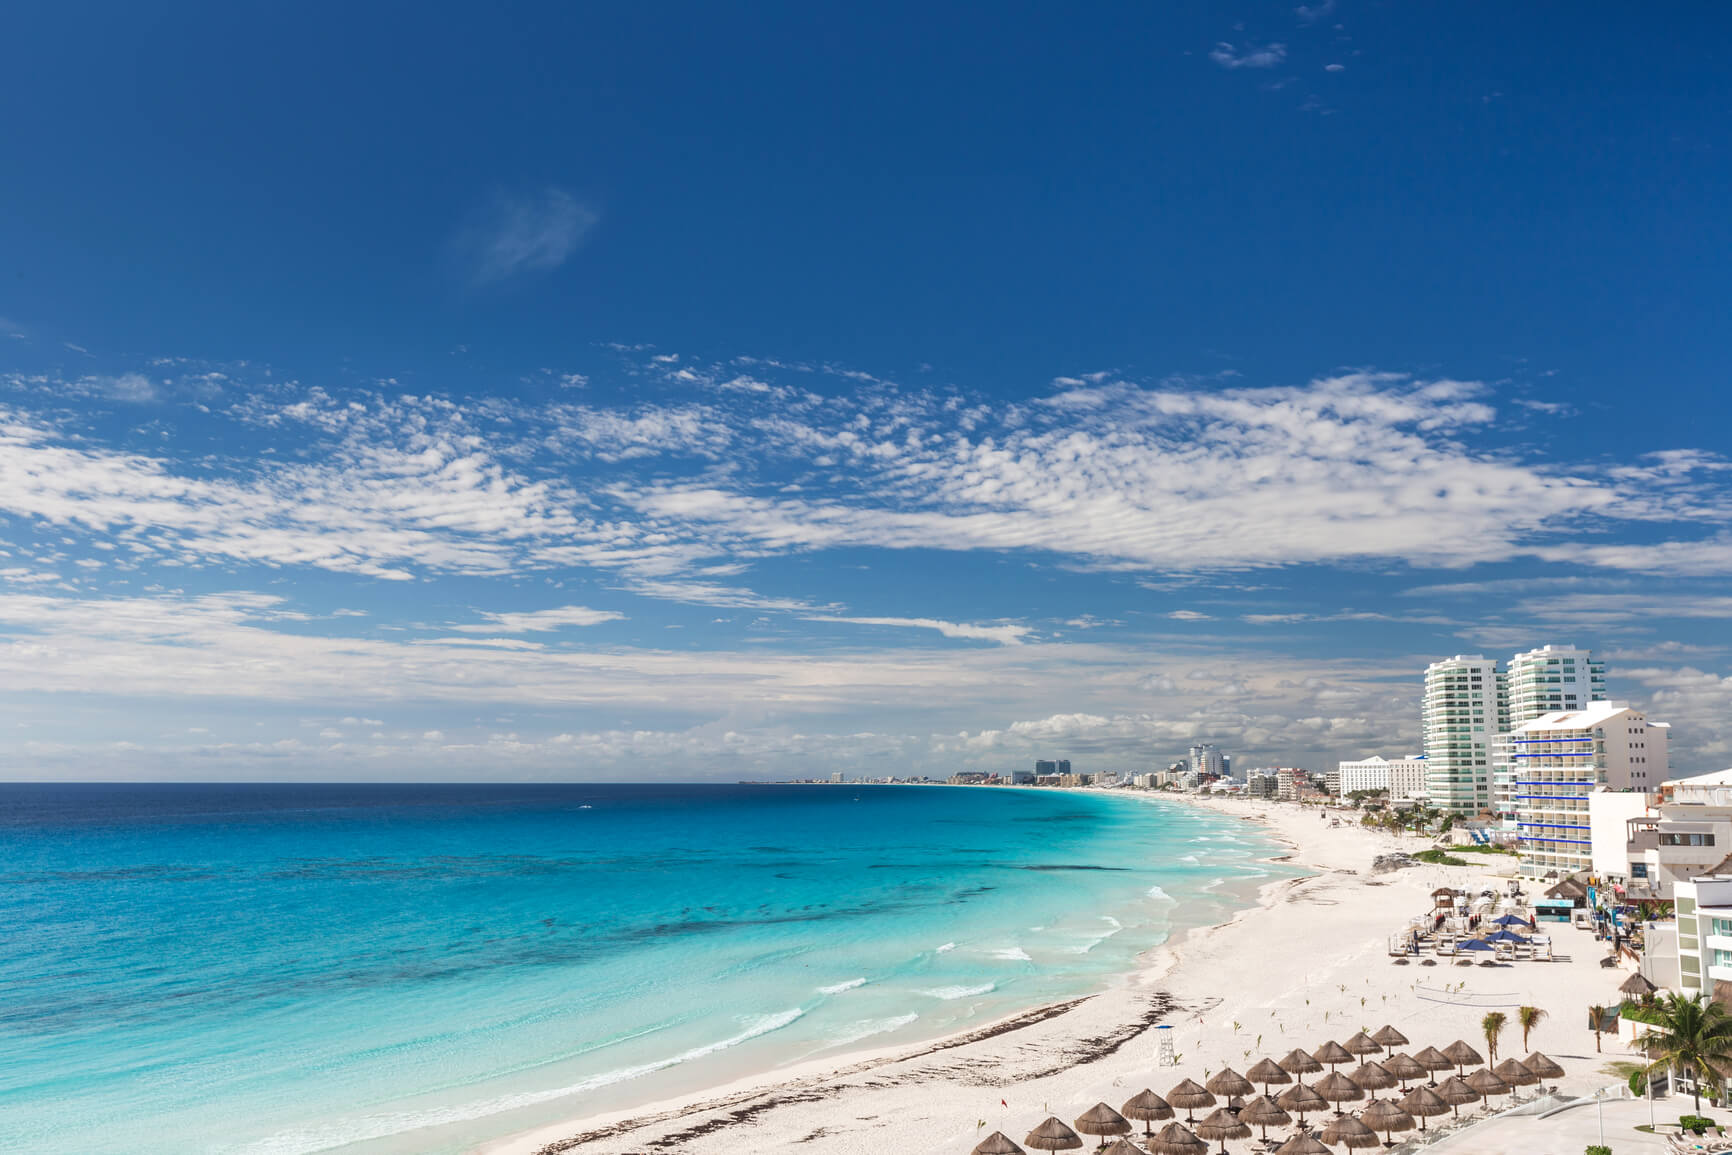 Madrid, Spain to Cancun, Mexico for only €310 roundtrip (Oct-Dec dates)